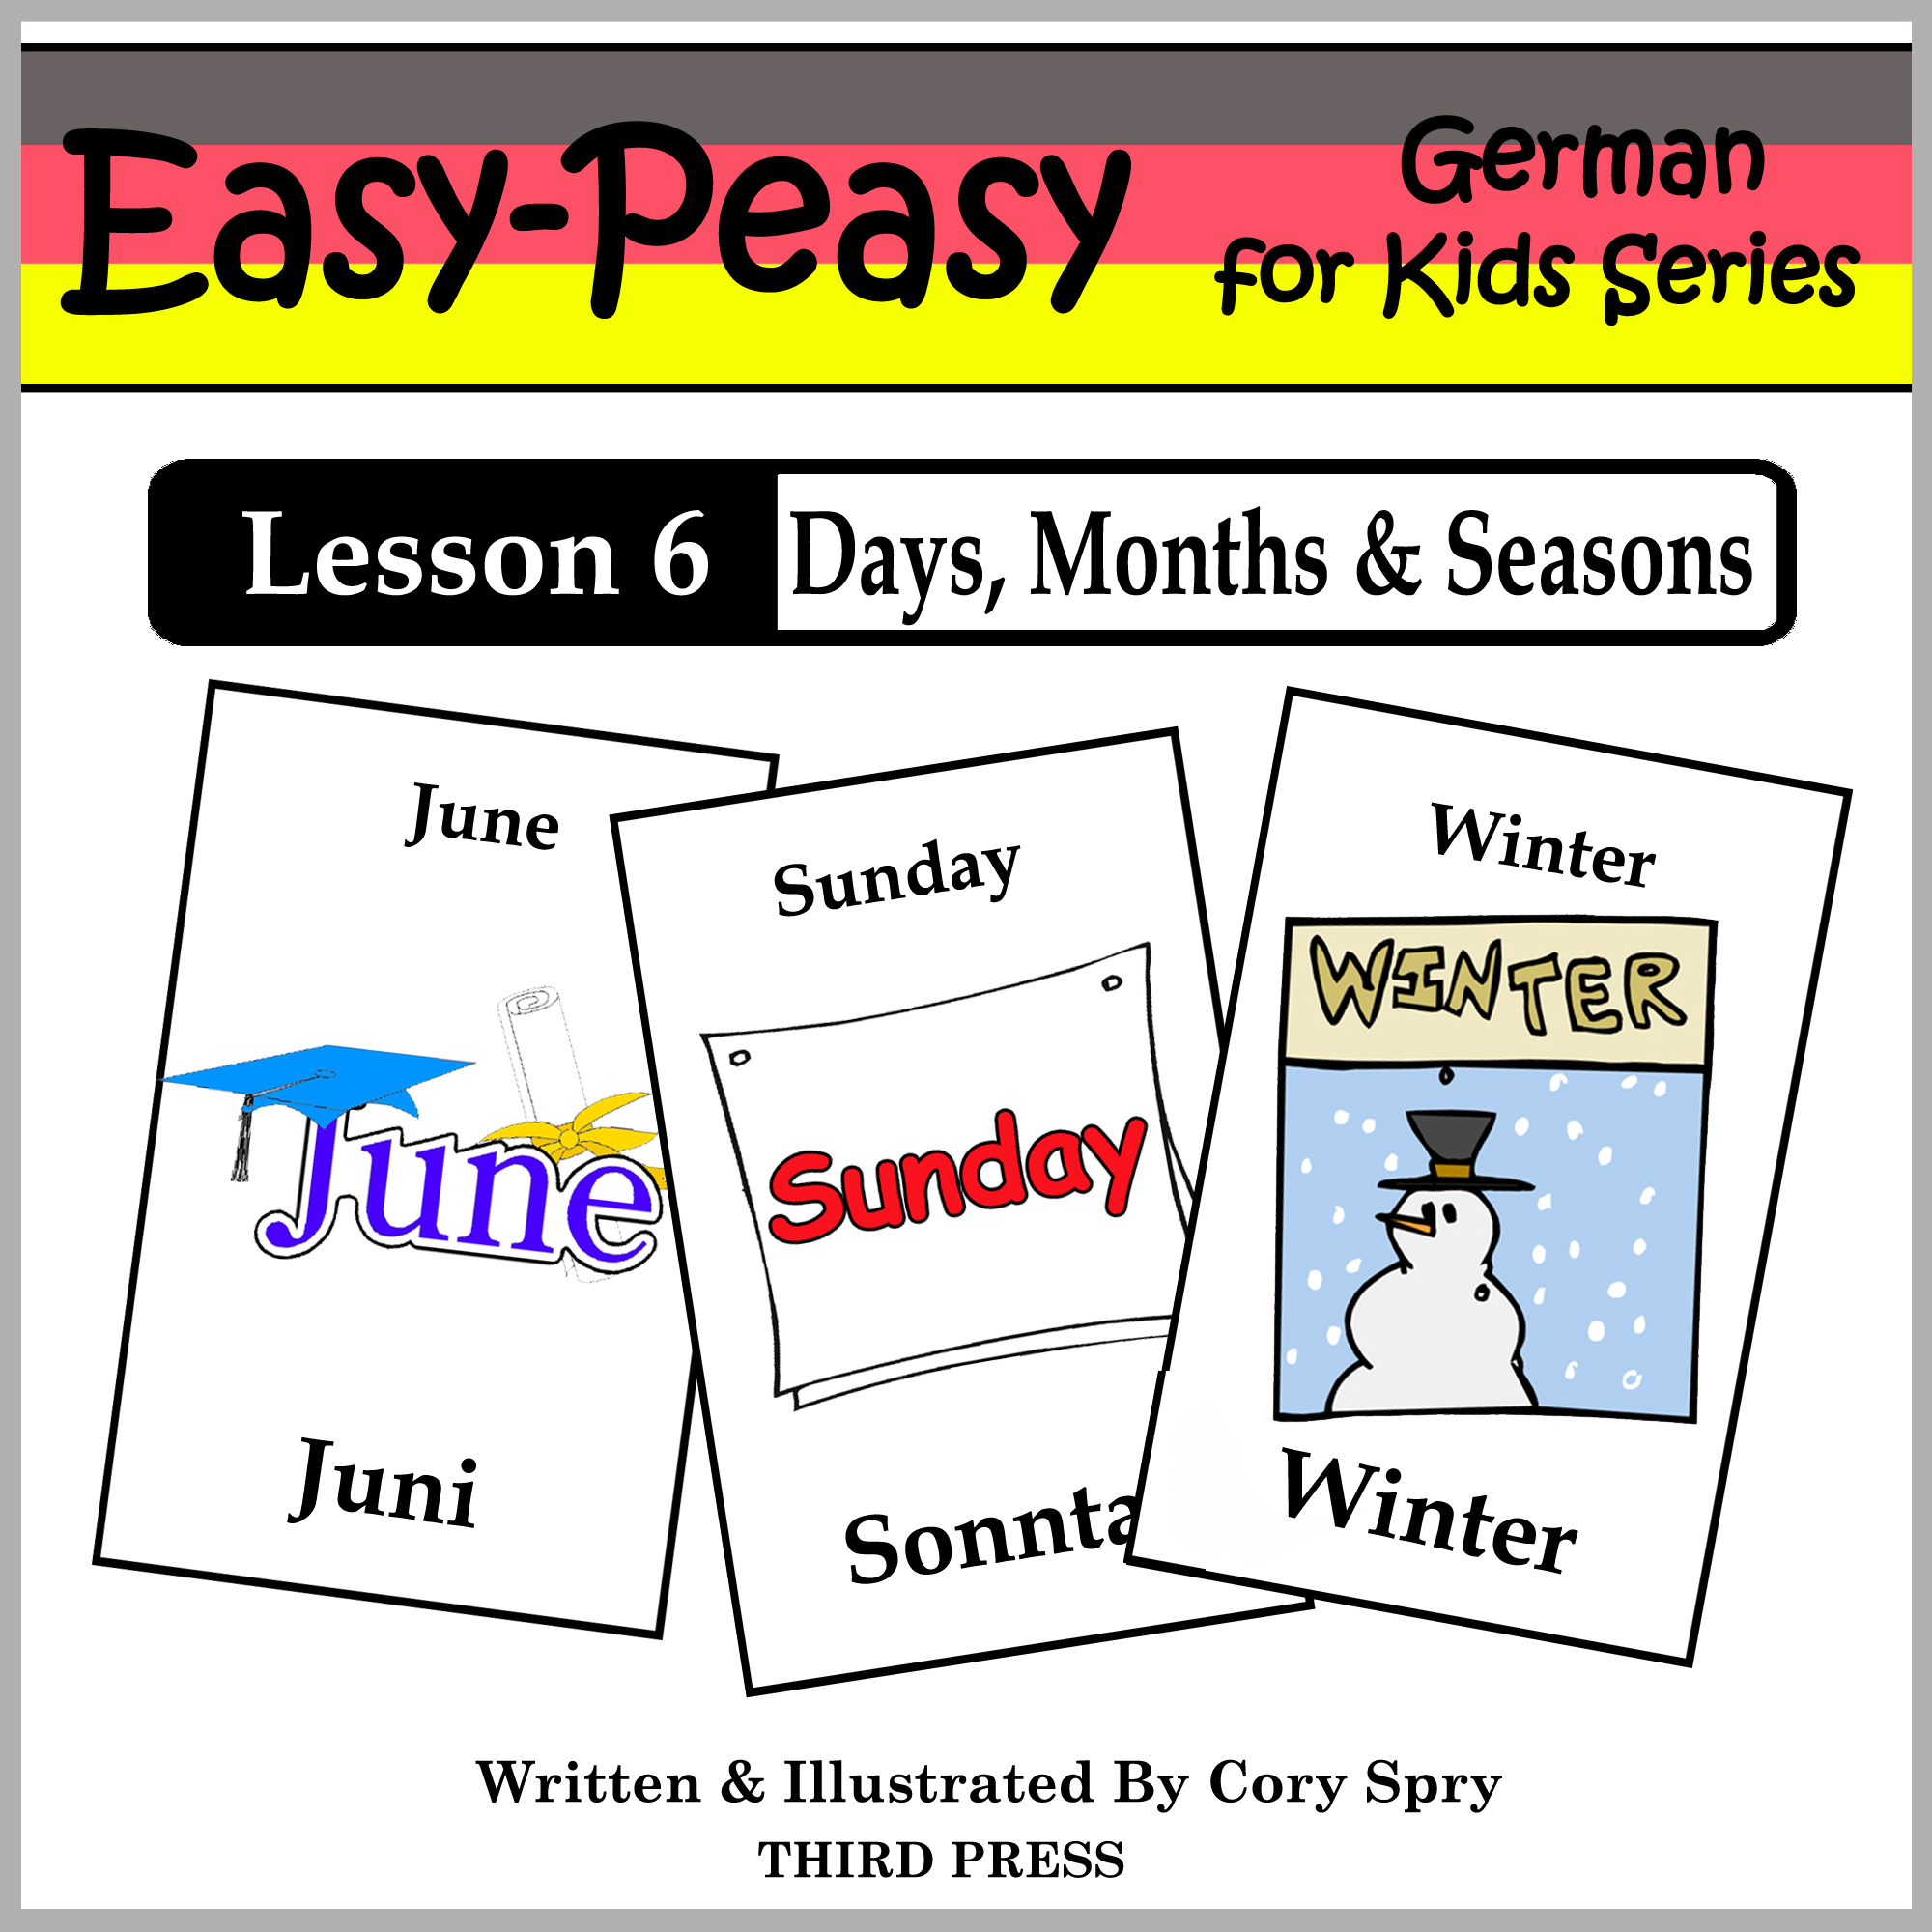 German Lesson 6: Months, Days & Seasons By: Cory Spry